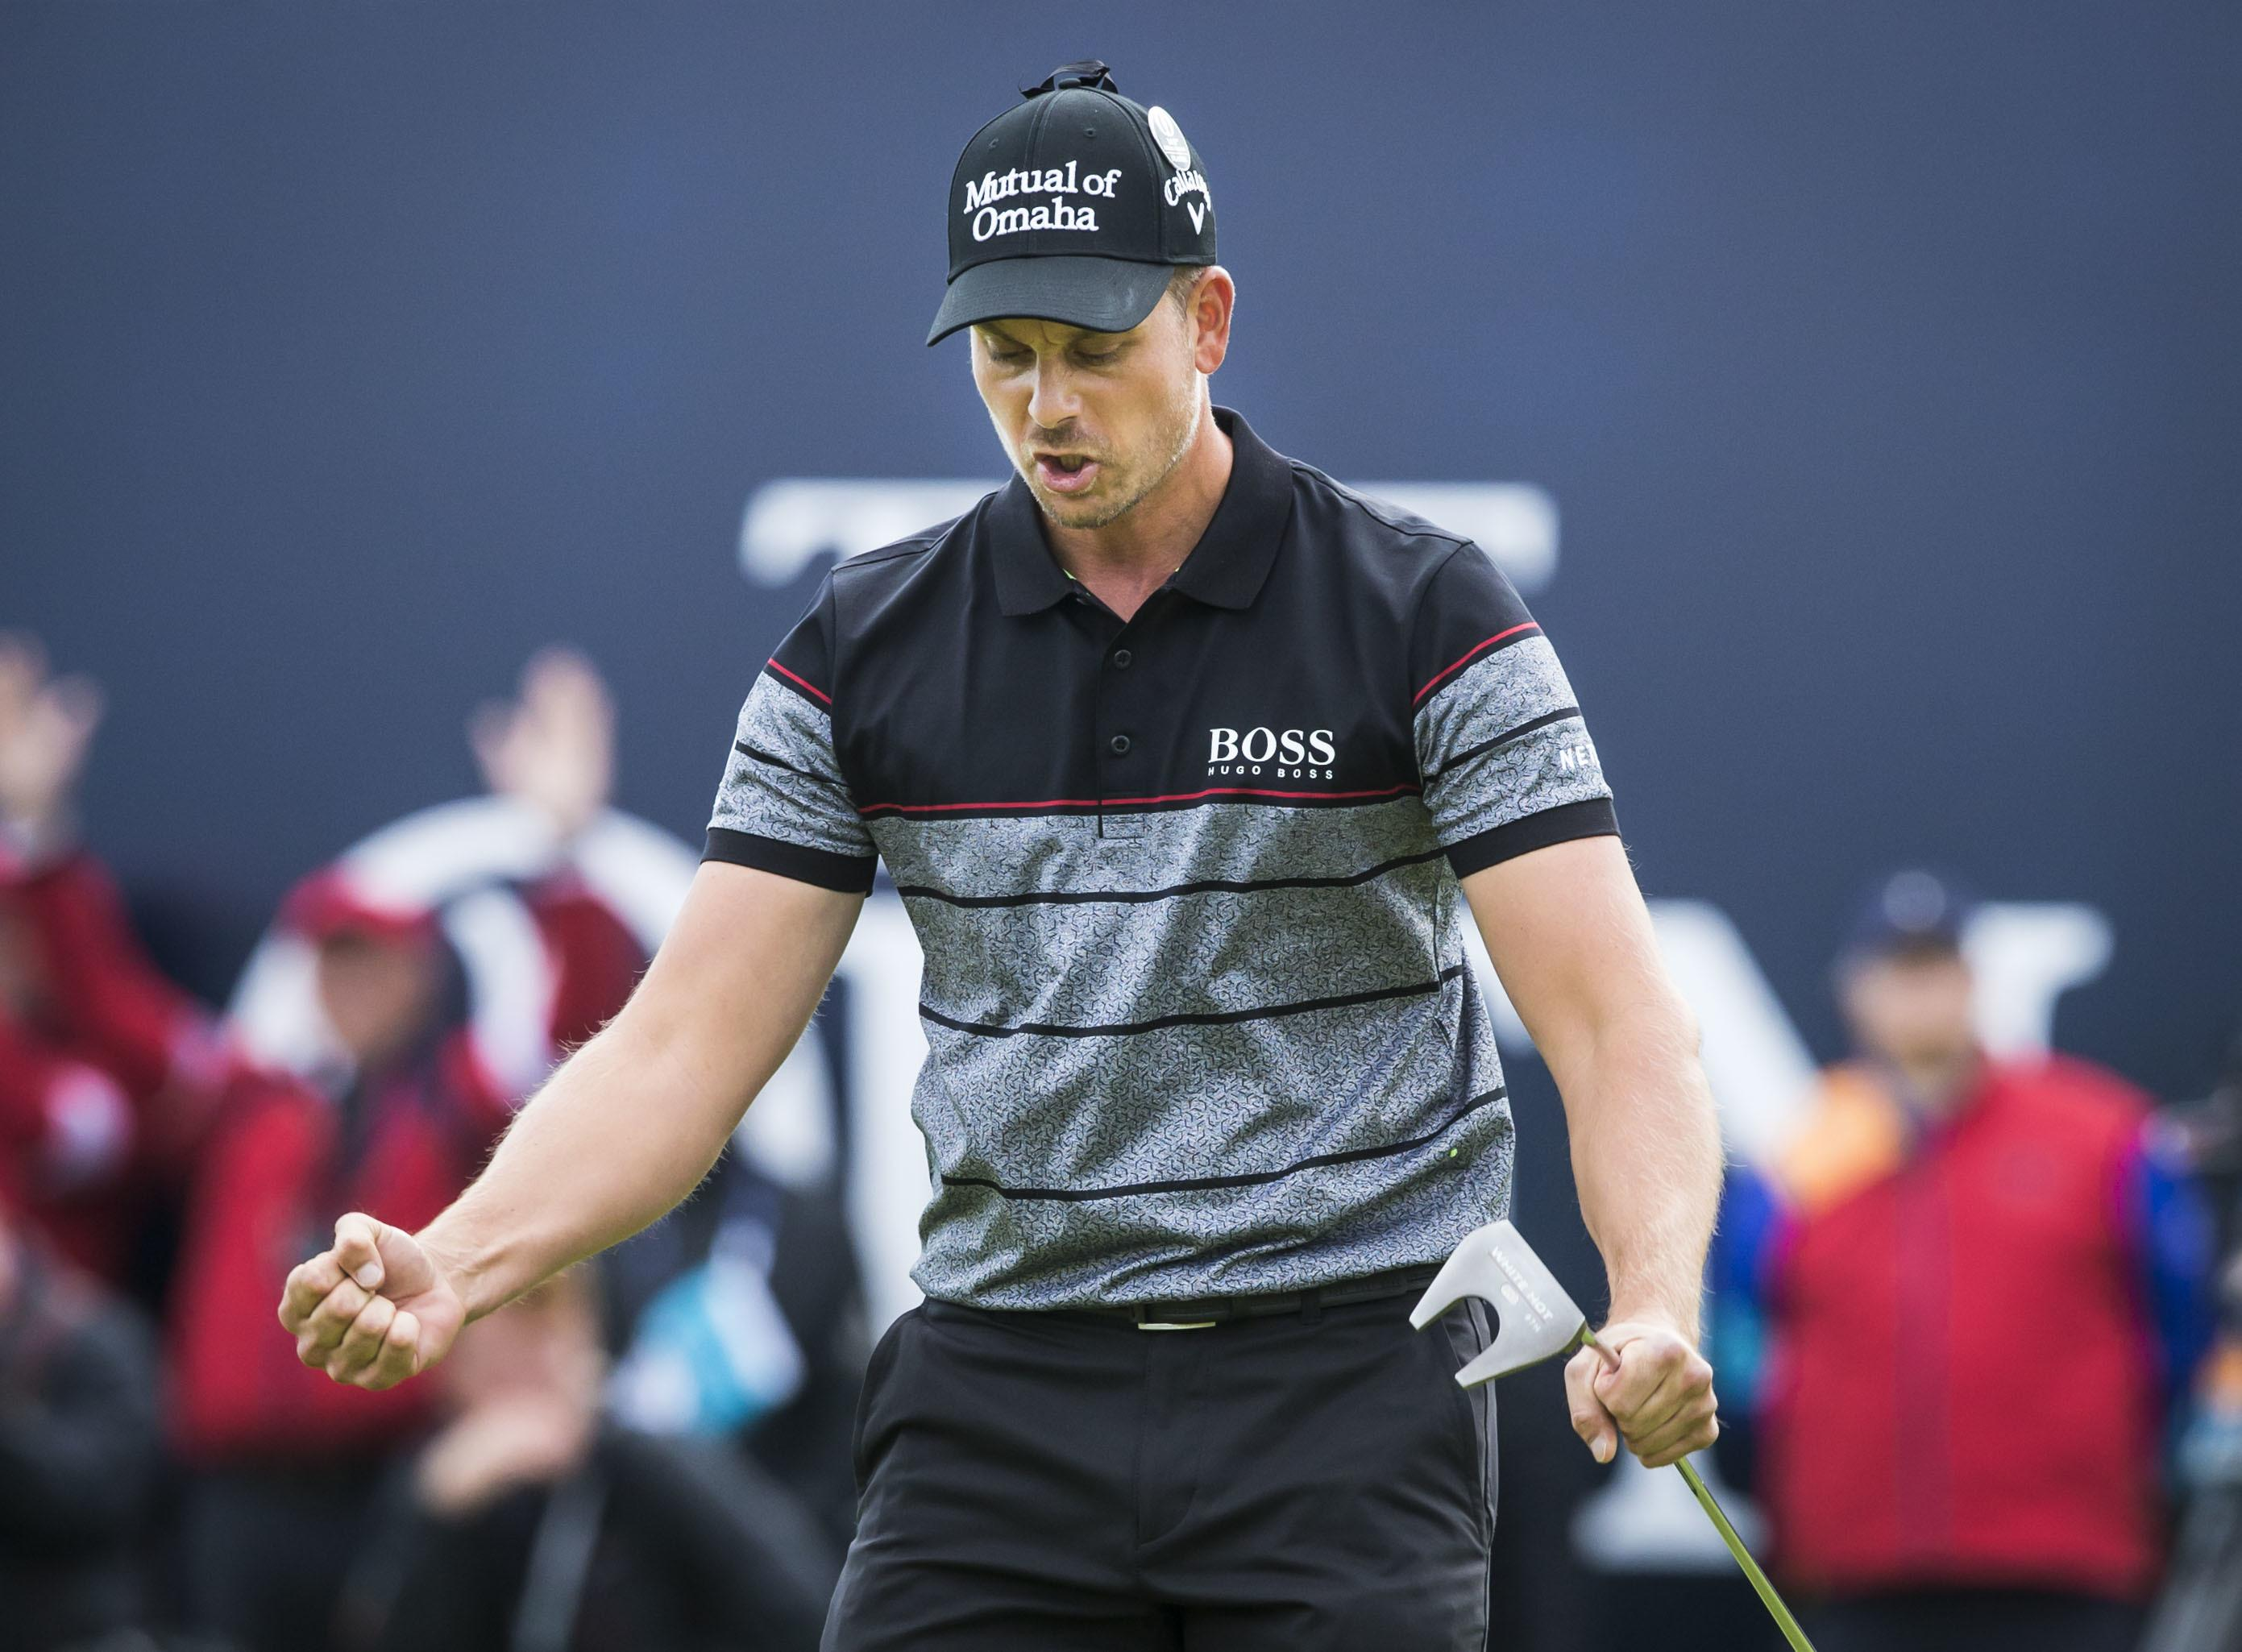 Henrik Stenson has overcome an elbow injury to get the call